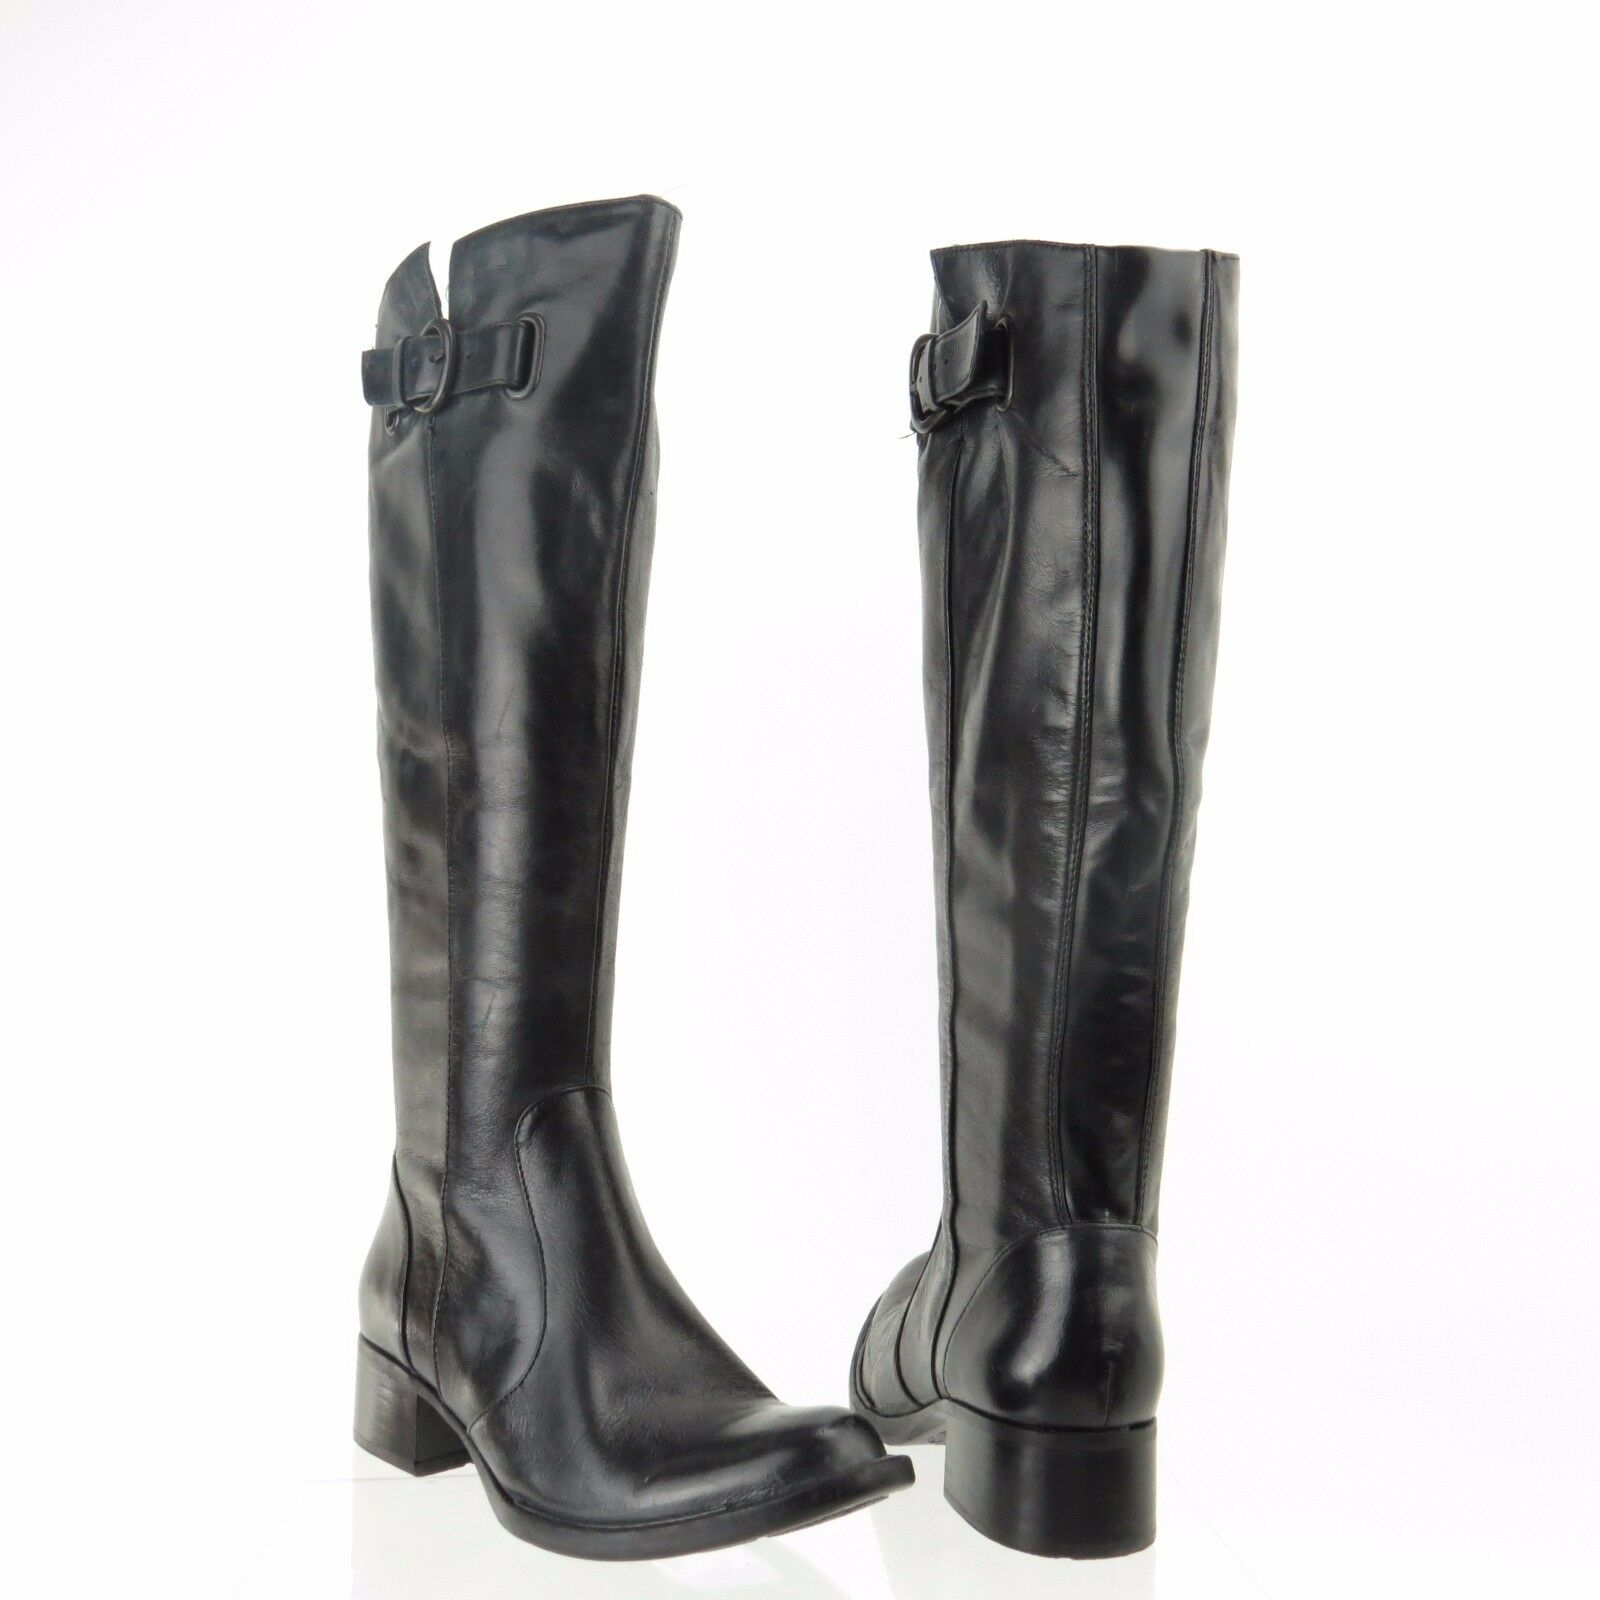 Womens Crown By Born Roxie shoes Black Leather Knee High Fashion Boot Sz 5 M NEW